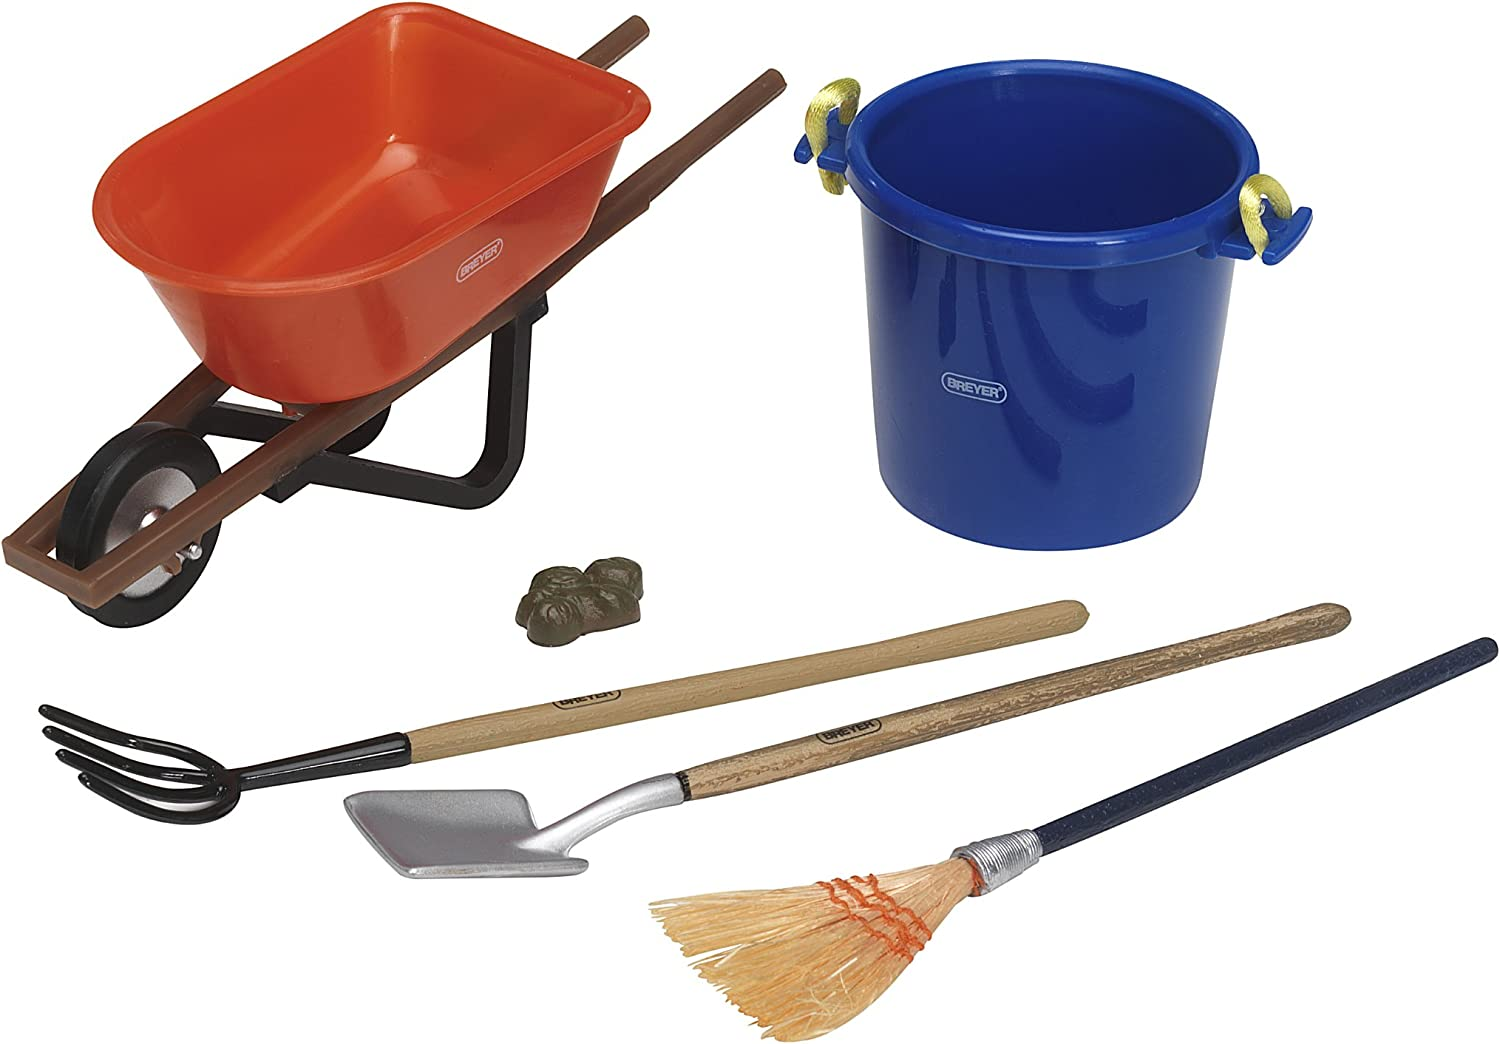 B00005ME2O Breyer Traditional Stable Cleaning Set (1:9 Scale) 71DTEm1GH9L